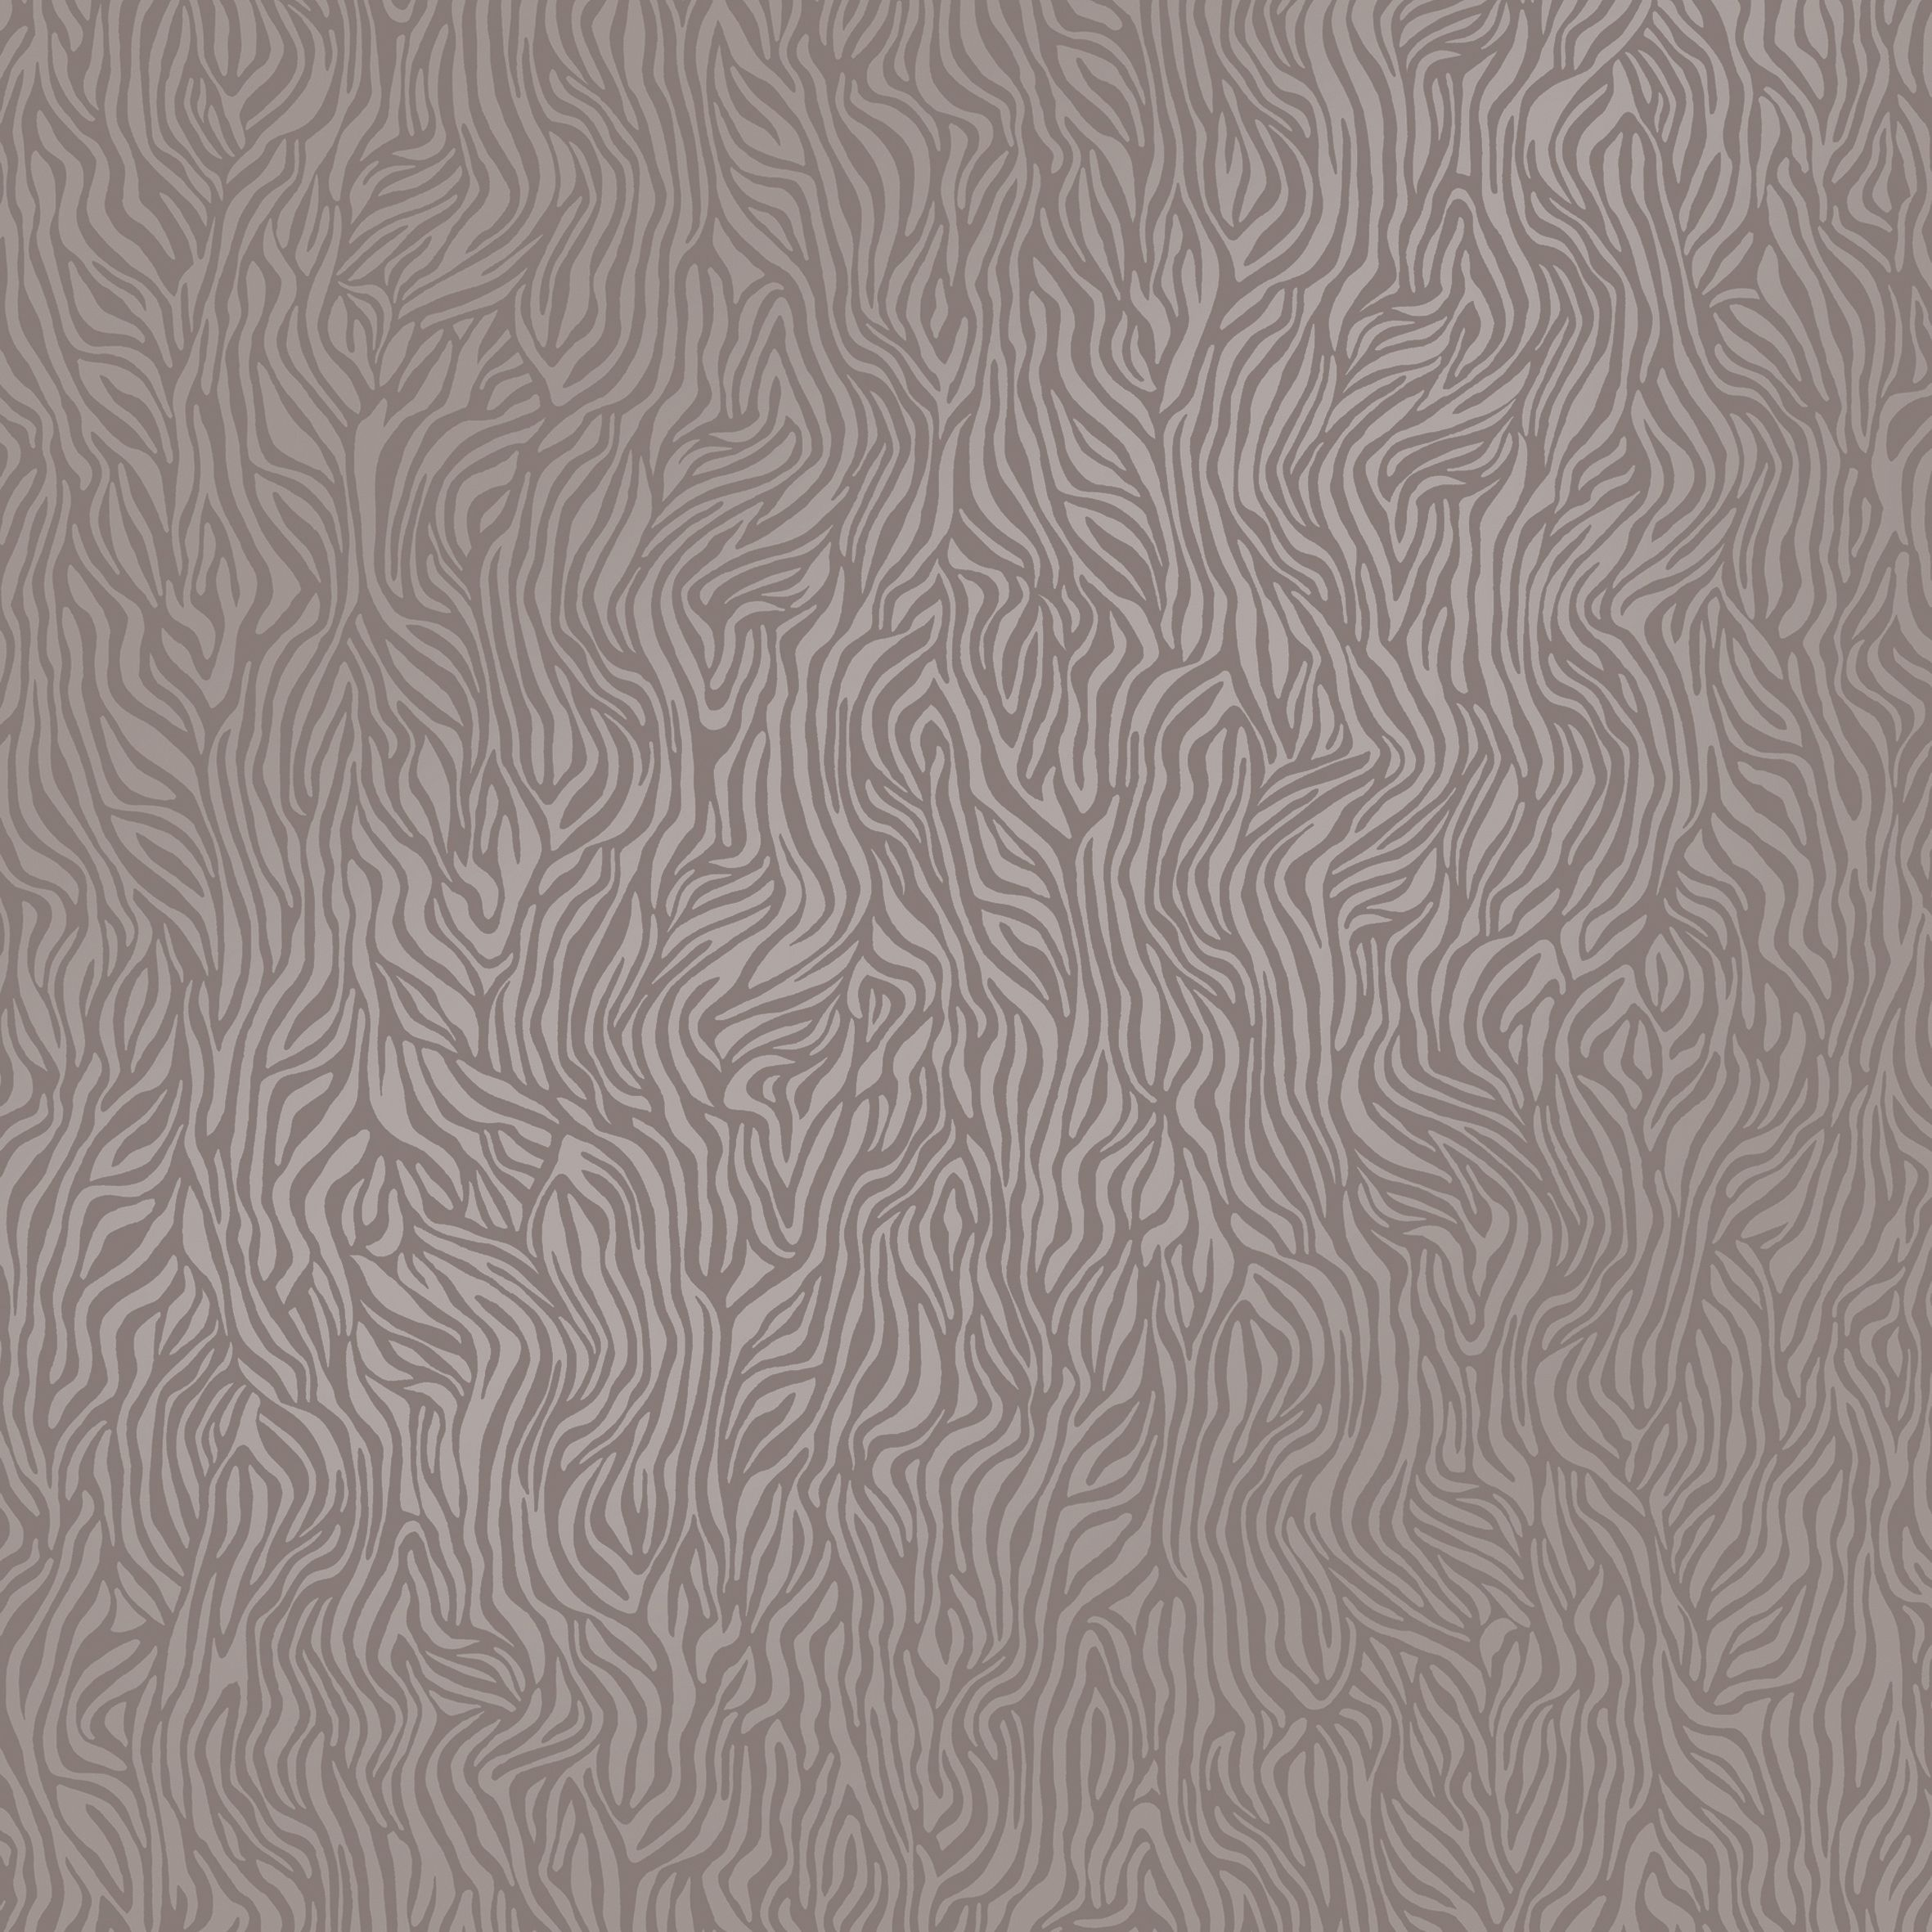 Statement Gilver Taupe Animal Print Metallic Effect Wallpaper B Q For All Your Home And Garden Supplies And Adv Diy Wallpaper Diy Trends Textured Wallpaper